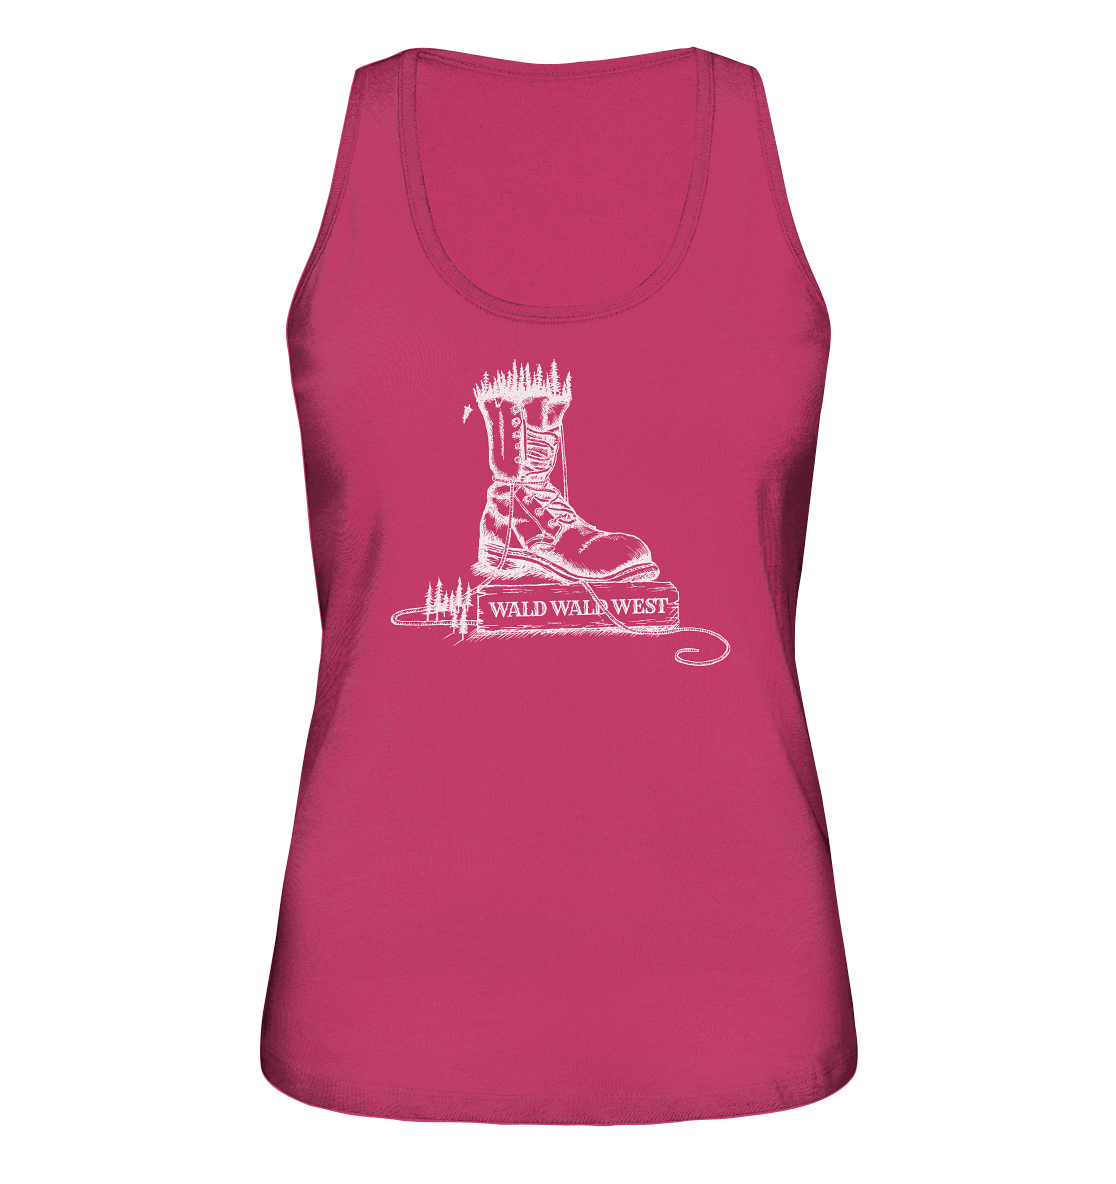 front-ladies-organic-tank-top-c63a6a-1116x.png